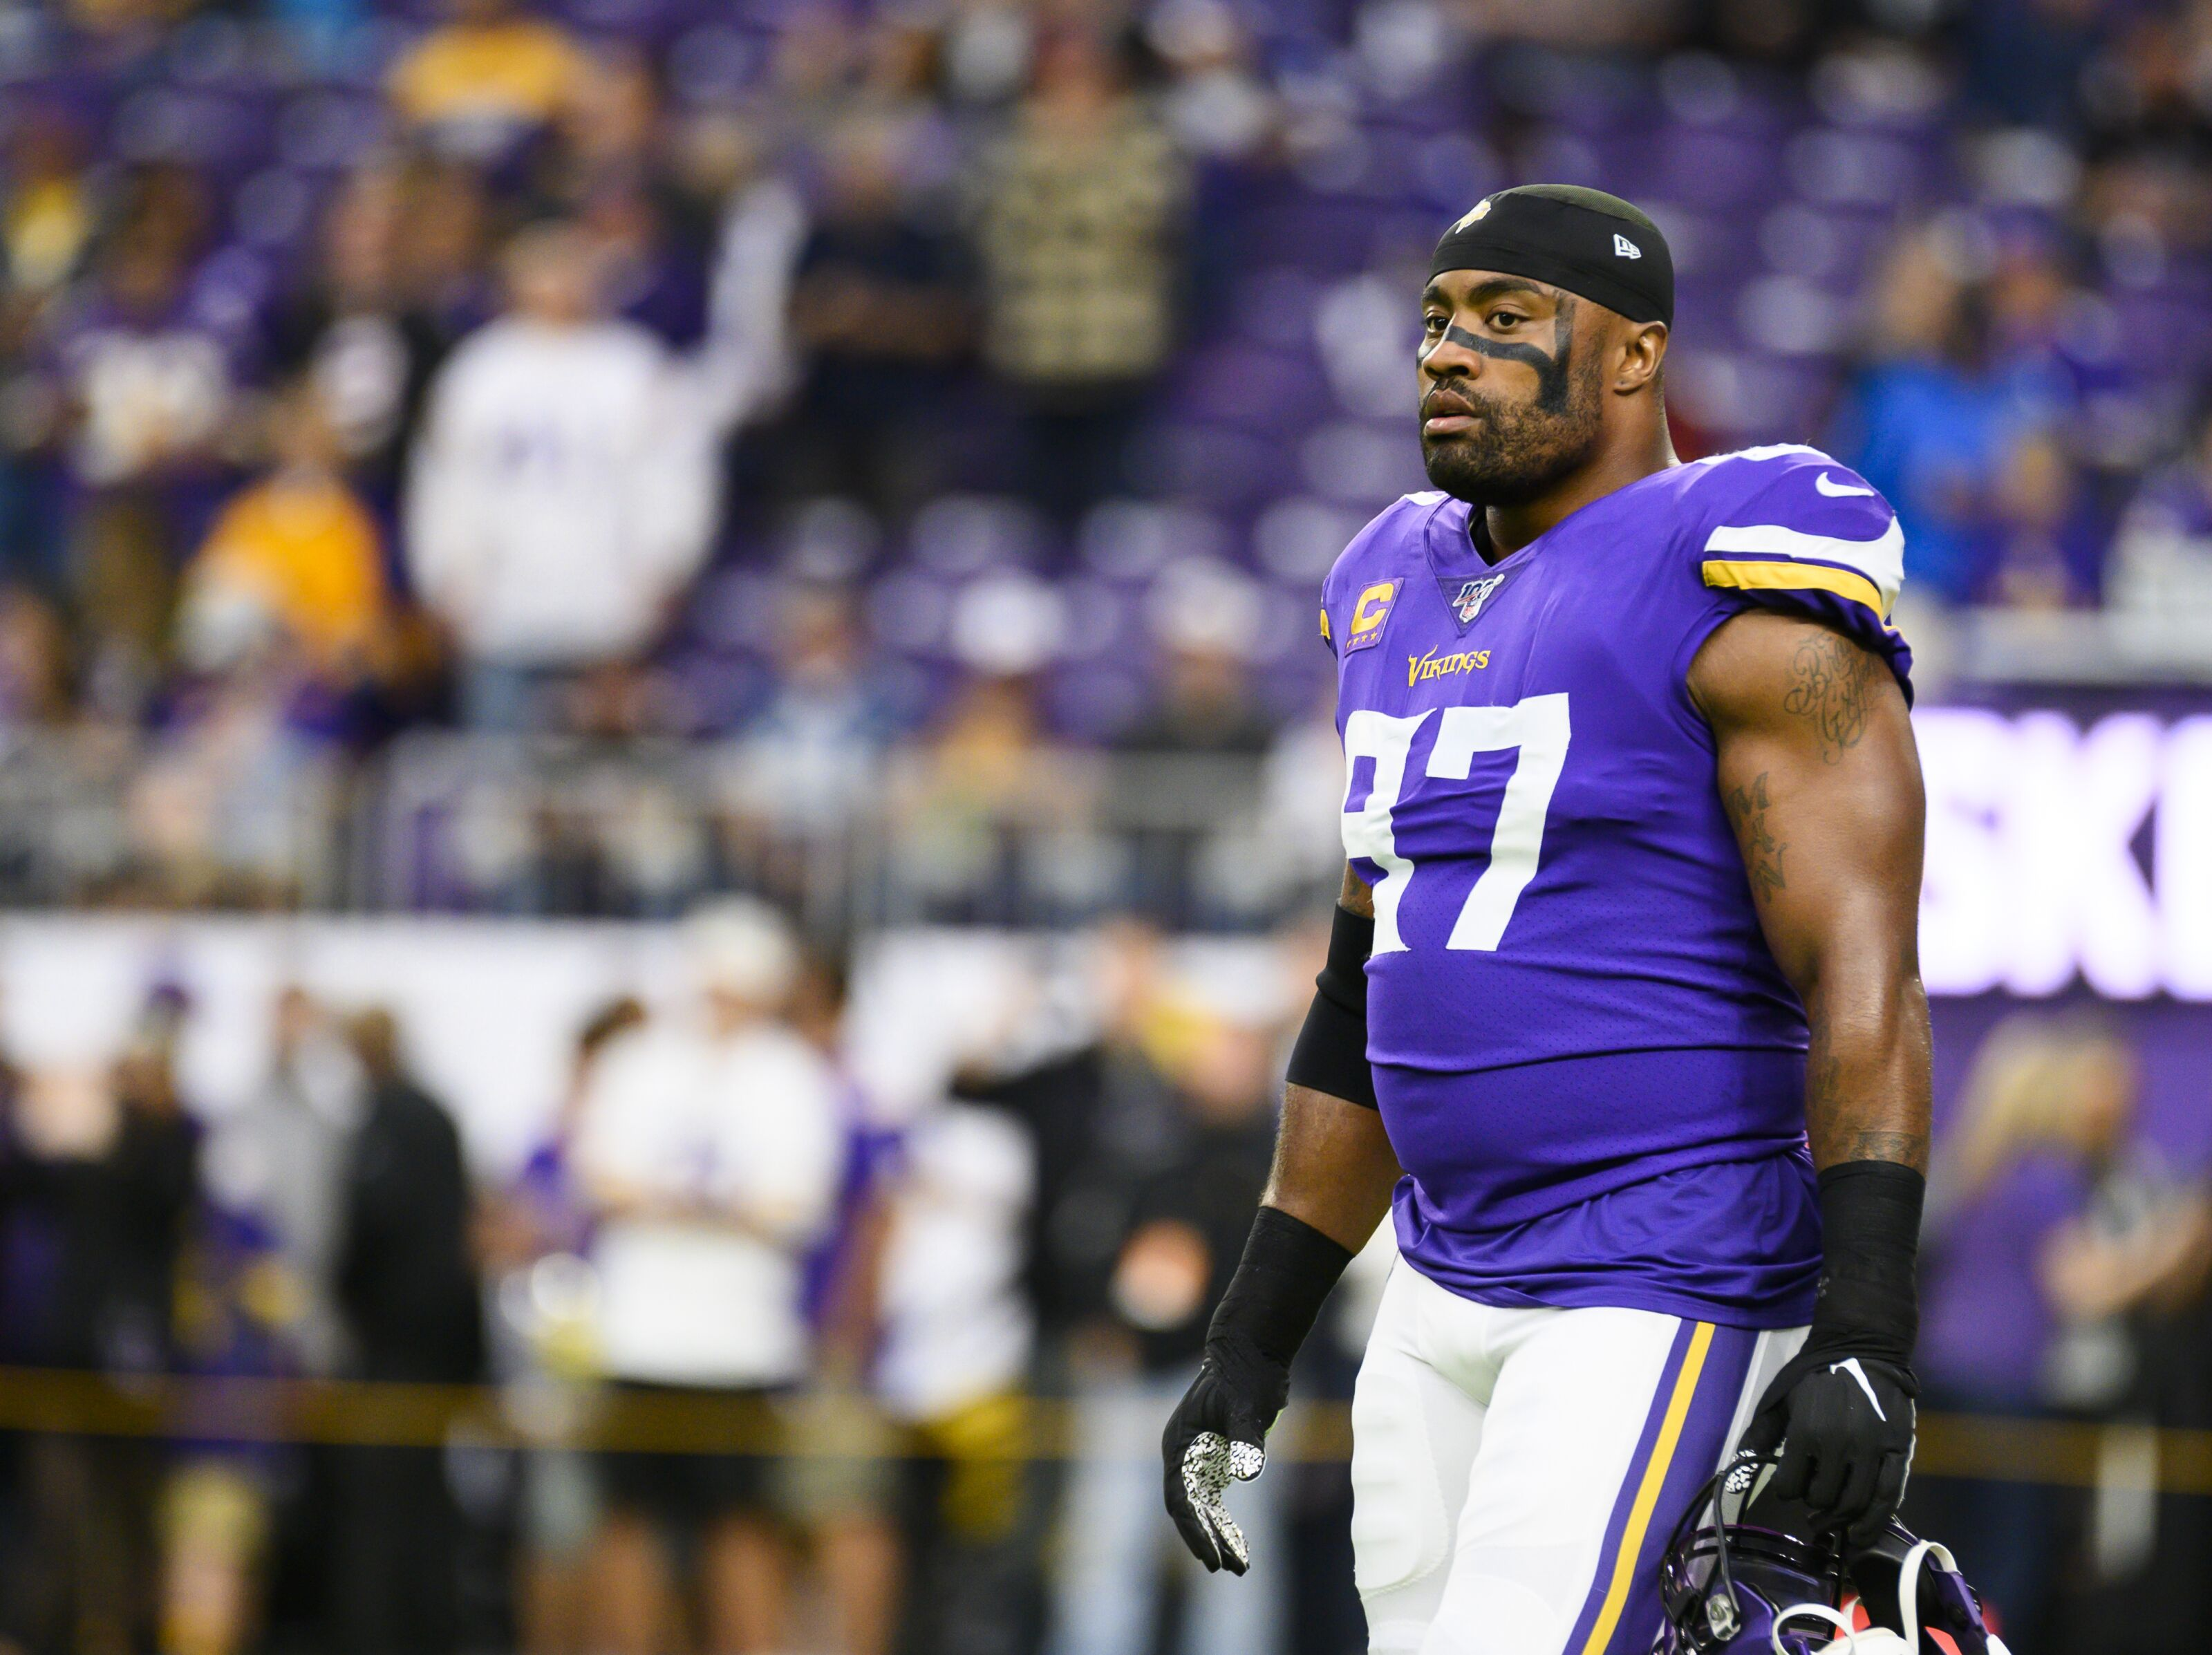 Everson Griffen is back and he may be even better than ever